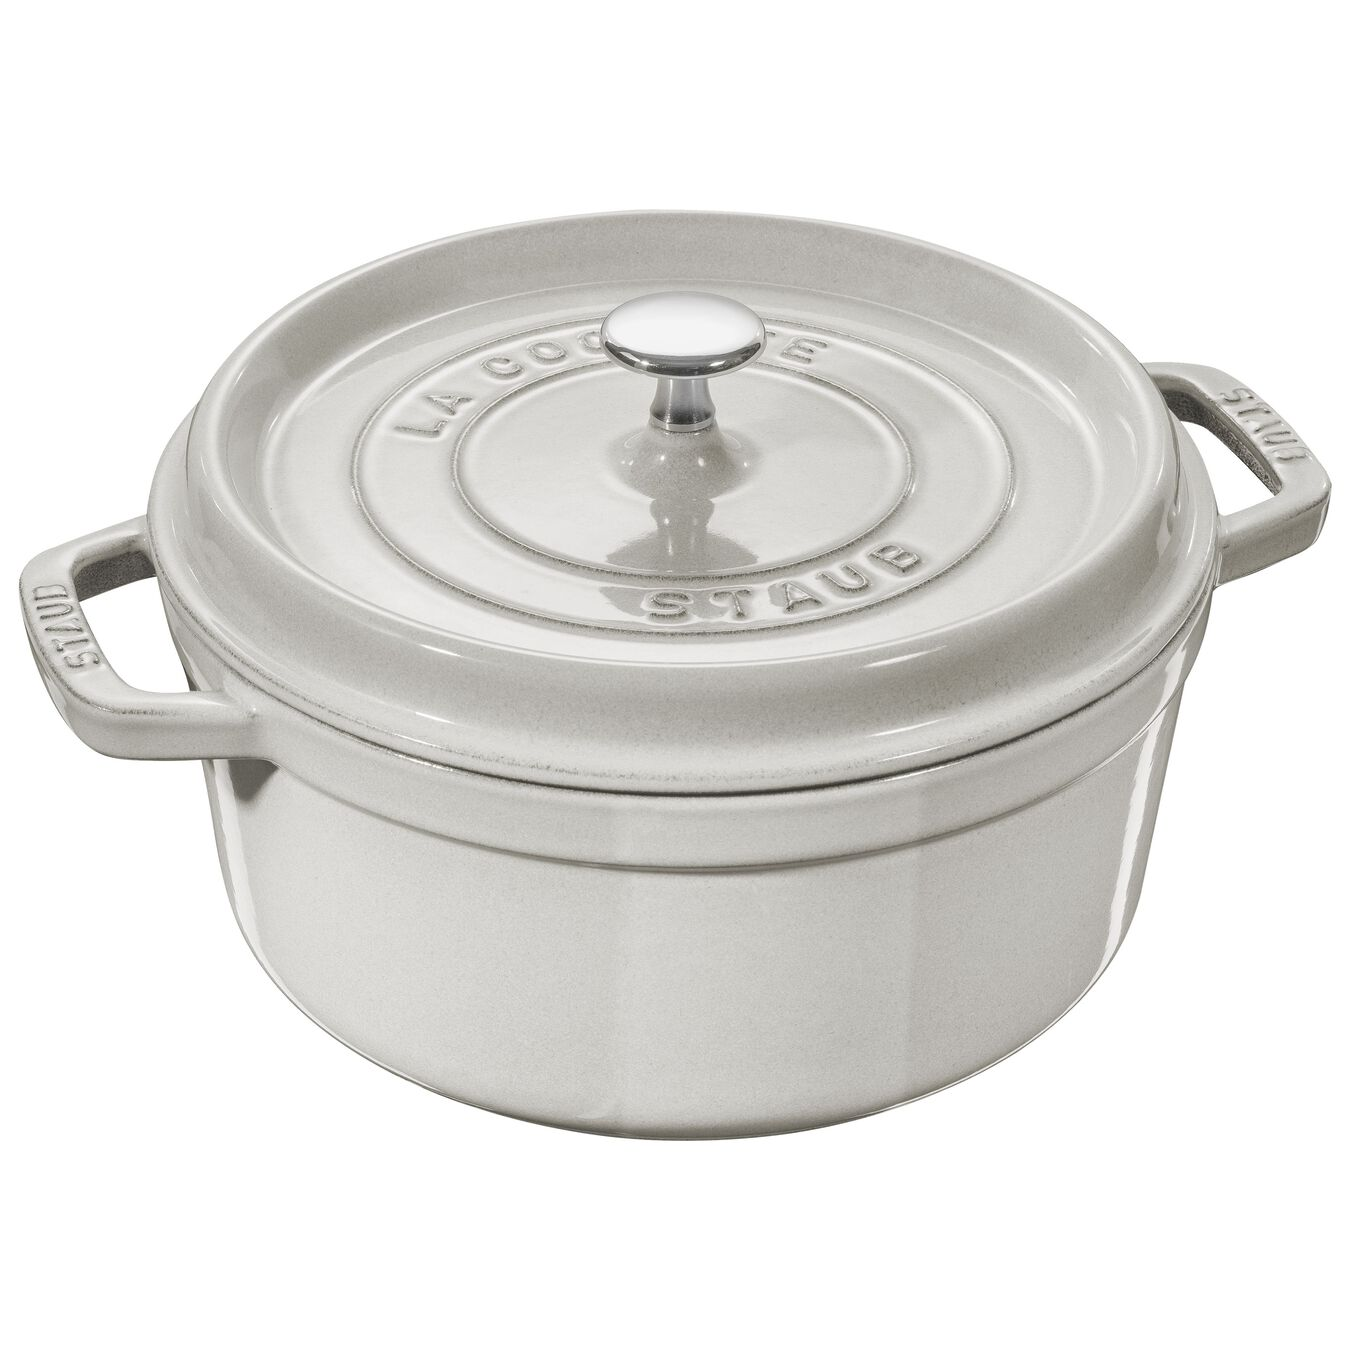 5.5-qt Round Cocotte - White Truffle,,large 1